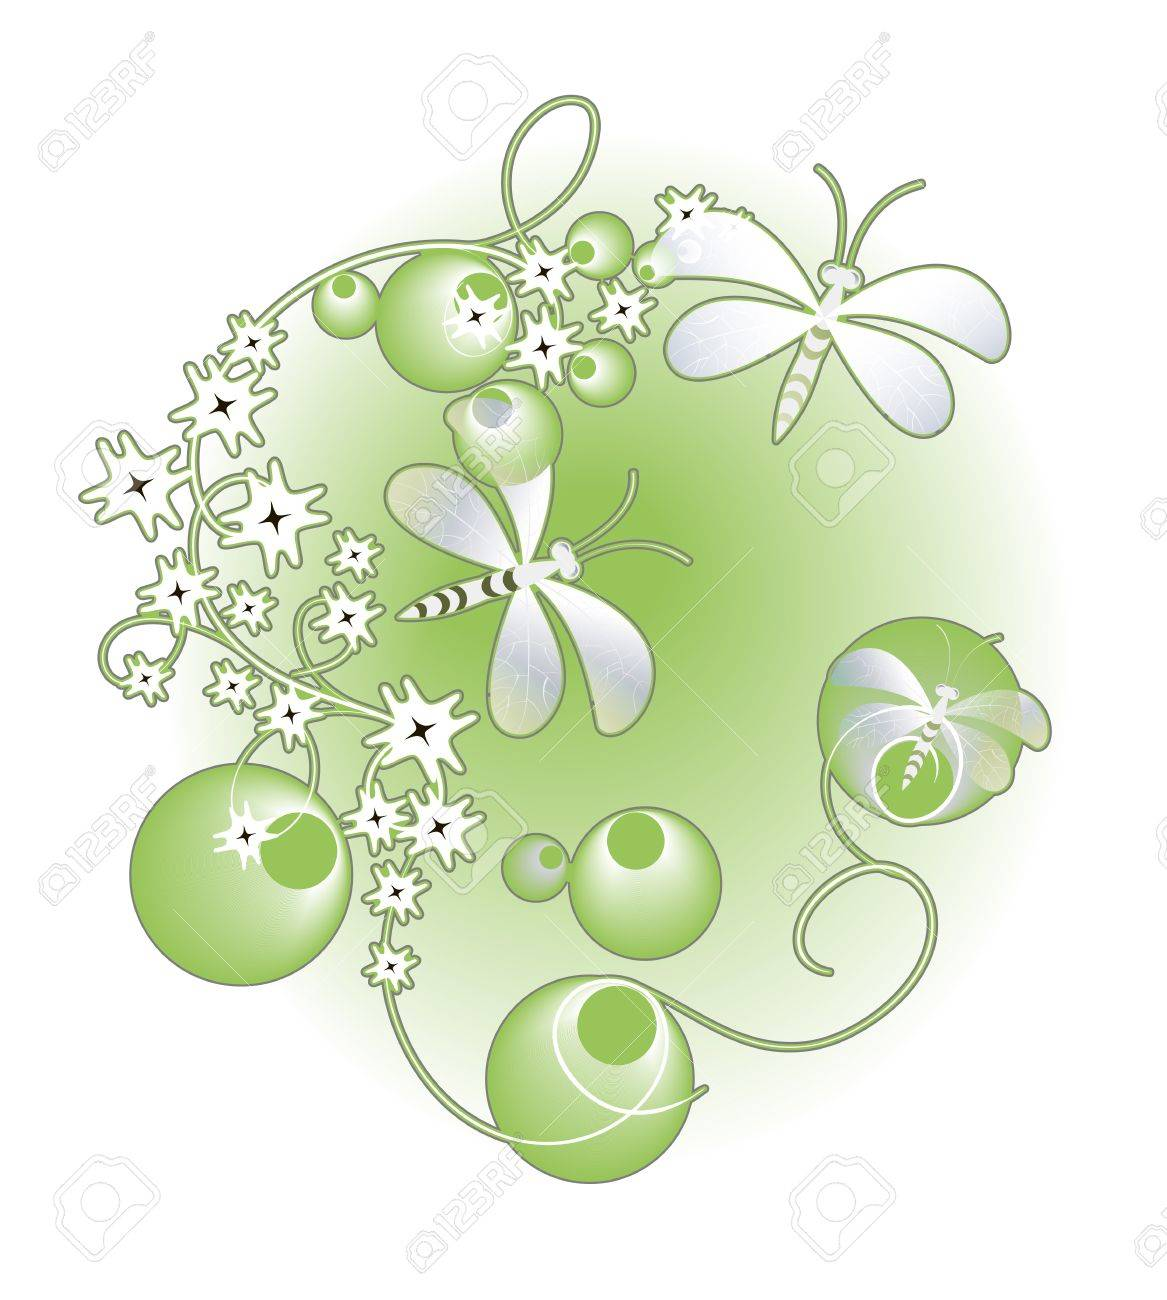 illustration with  dragonflies and flowers on light background Stock Vector - 16721555